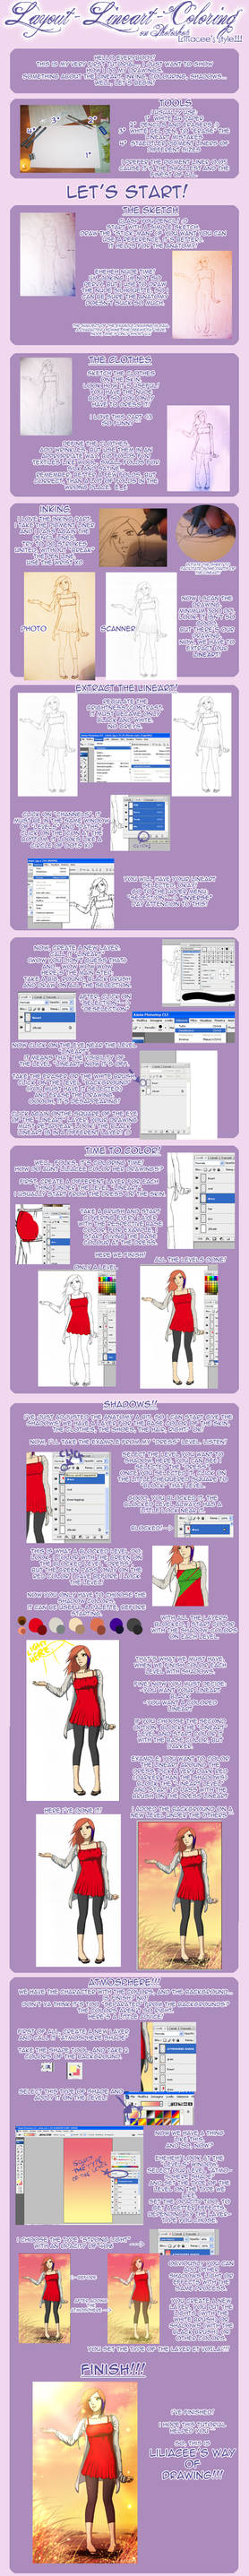 .:Lili's Photoshop TUTORIAL:.